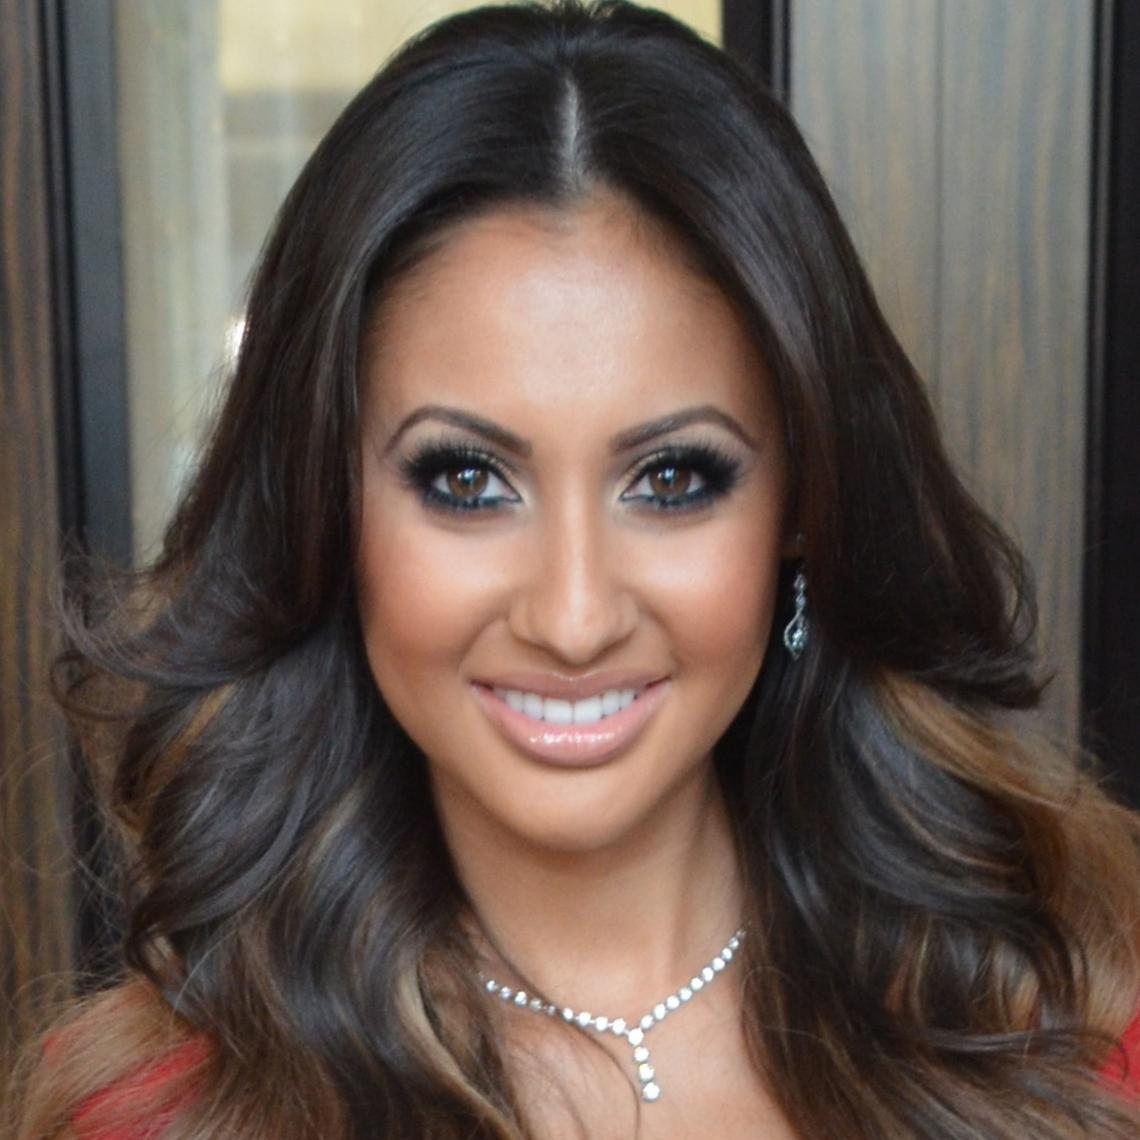 Francia Raisa Net Worth, Height, Age, Bio, Facts | Dead or ...